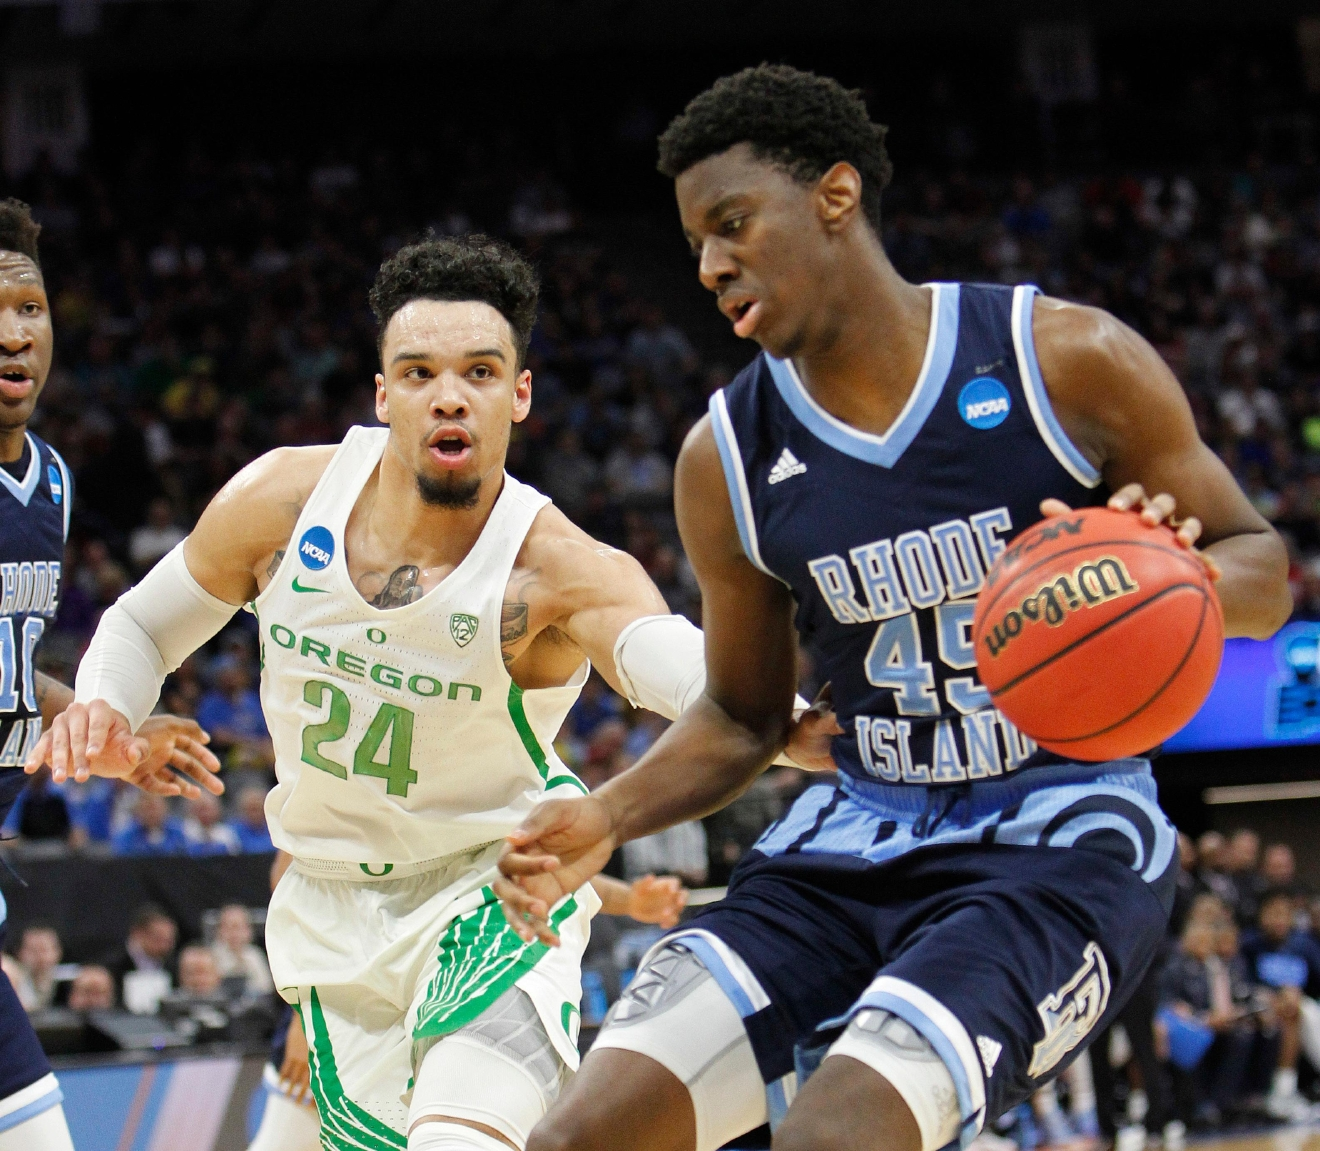 Rhode Island forward Nicola Akele, right, drives against Oregon forward Dillon Brooks during the first half of a second-round game of the men's NCAA college basketball tournament in Sacramento, Calif., Sunday, March 19, 2017. (AP Photo/Steve Yeater)